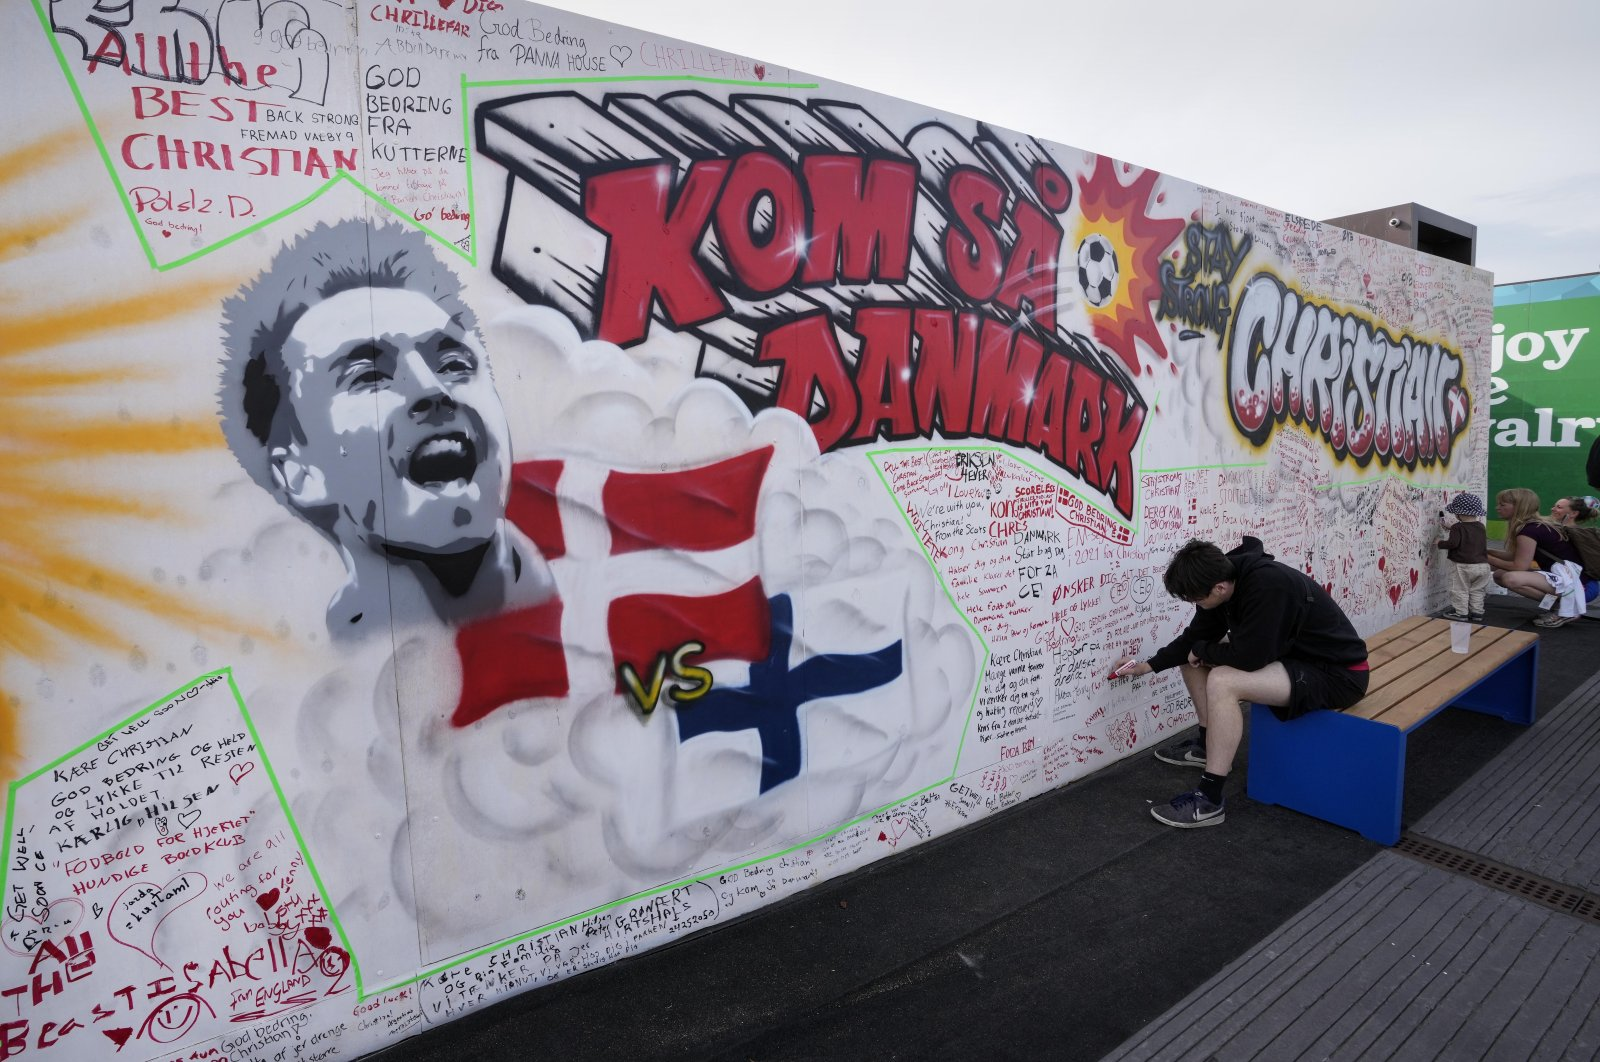 People writing well wishes at a graffiti for Danish player Christian Eriksen on a wall at the fan zone in Copenhagen, Denmark, June 14, 2021. (AP Photo)